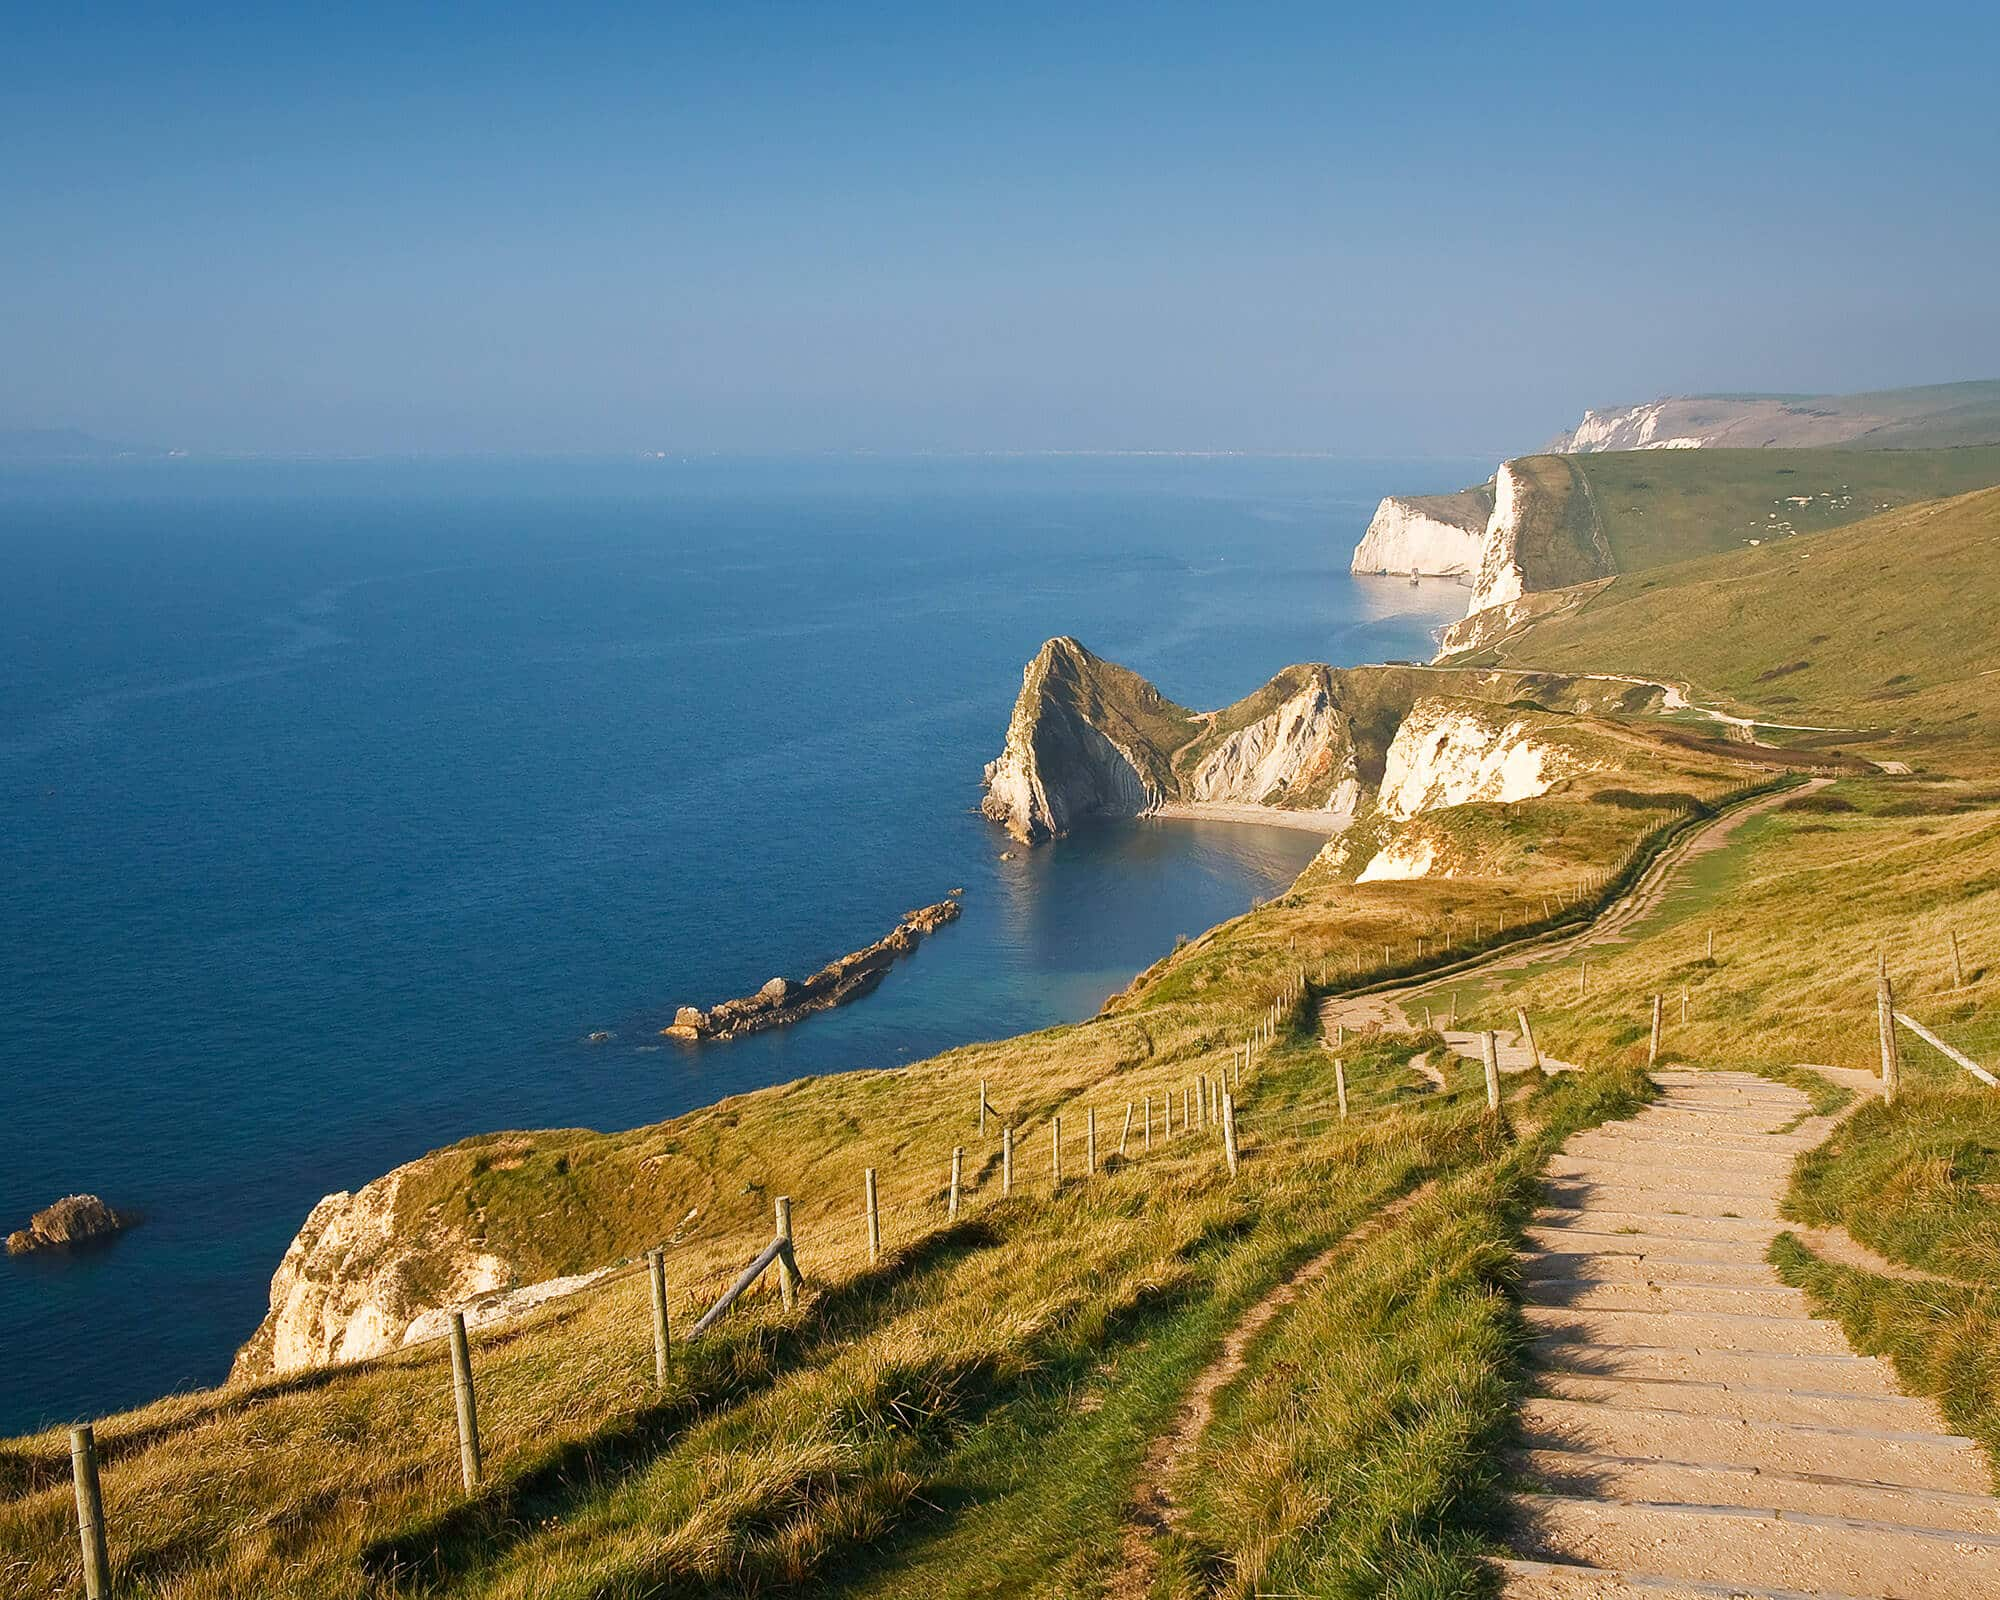 Top 5 reasons to have a Great British getaway